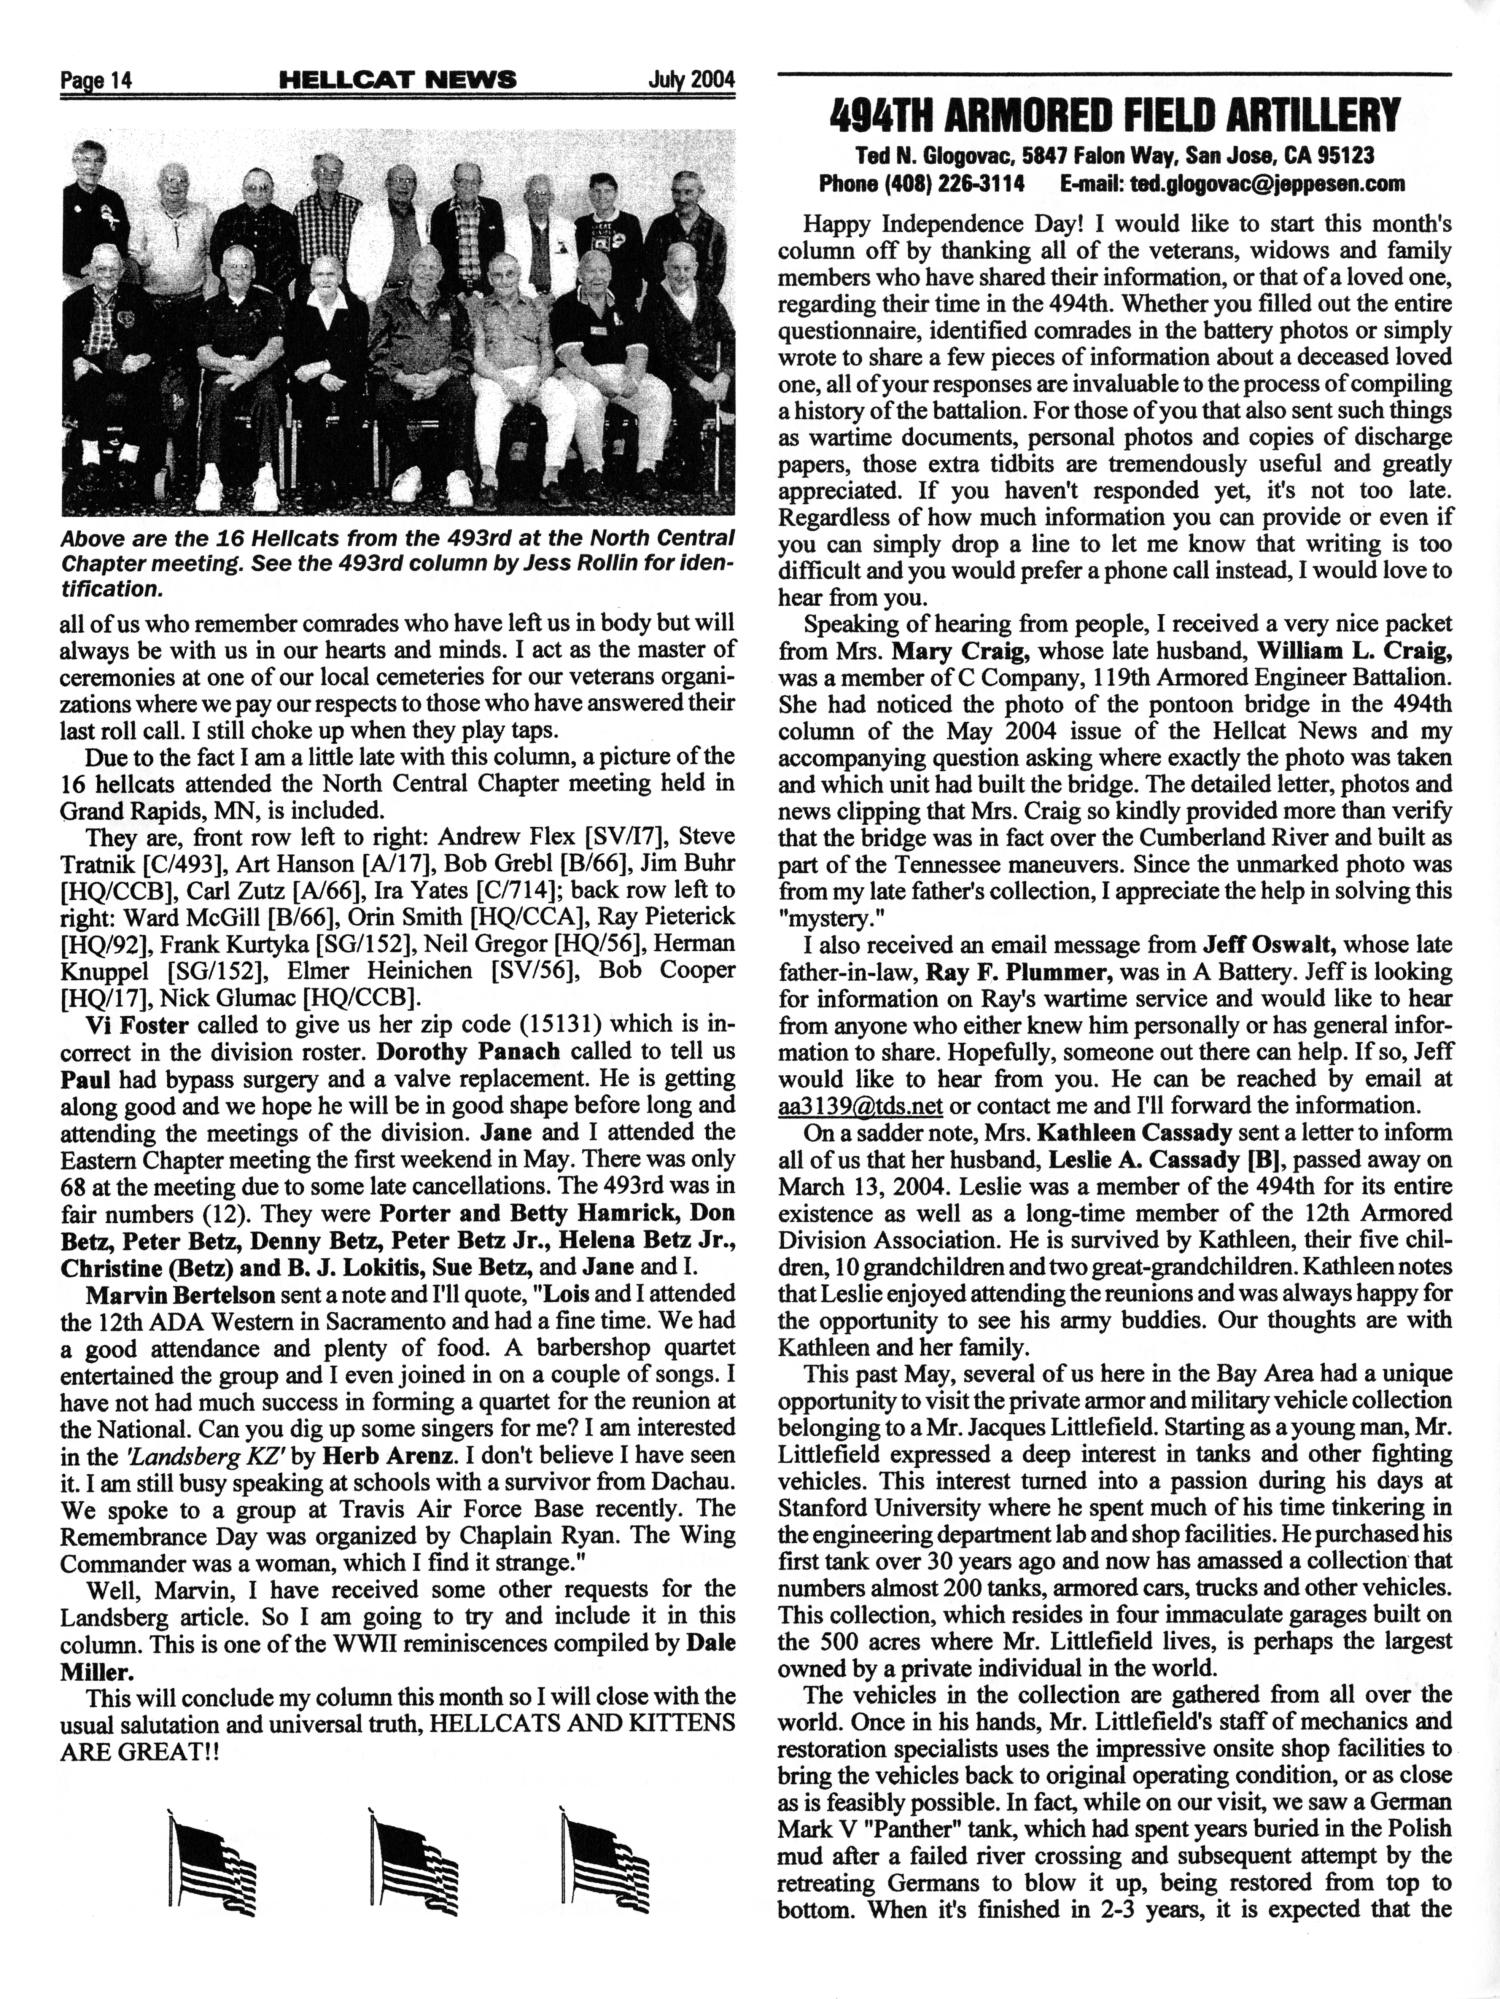 Hellcat News, (Fullerton, Calif.), Vol. 57, No. 11, Ed. 1, July 2004                                                                                                      [Sequence #]: 14 of 20